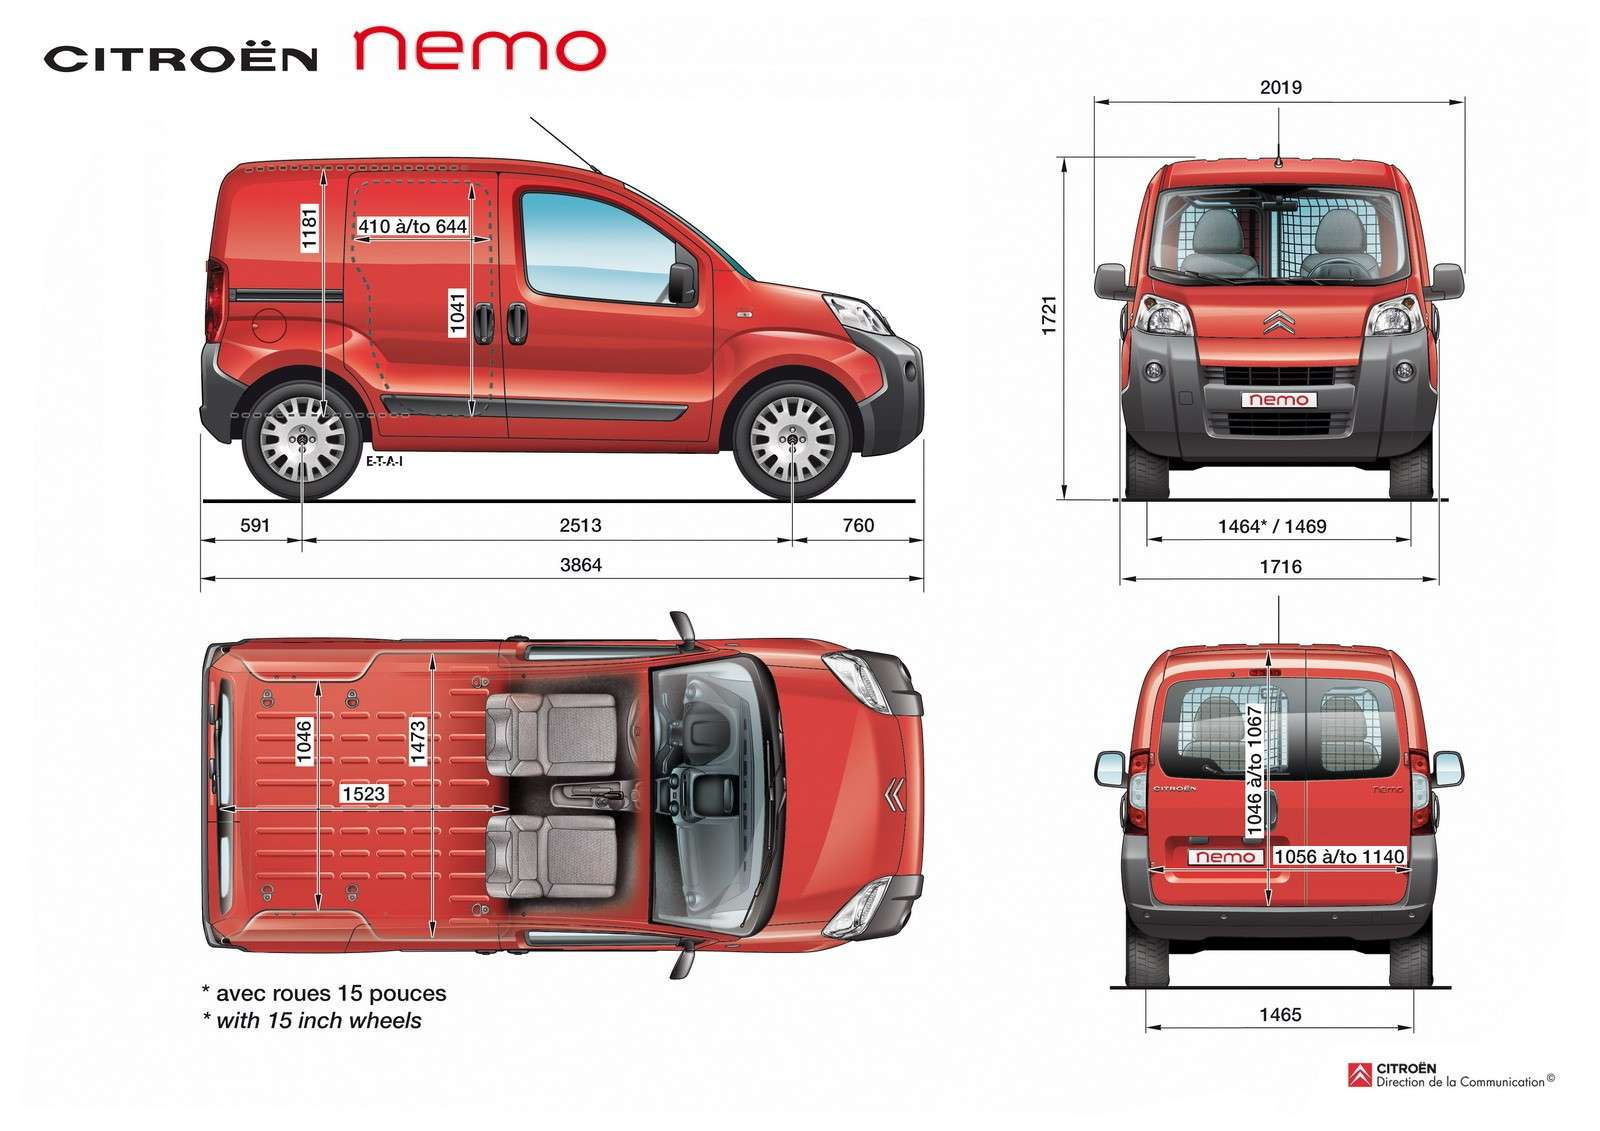 nouveaux fiat fiorino citro n nemo peugeot bipper page 2 auto titre. Black Bedroom Furniture Sets. Home Design Ideas